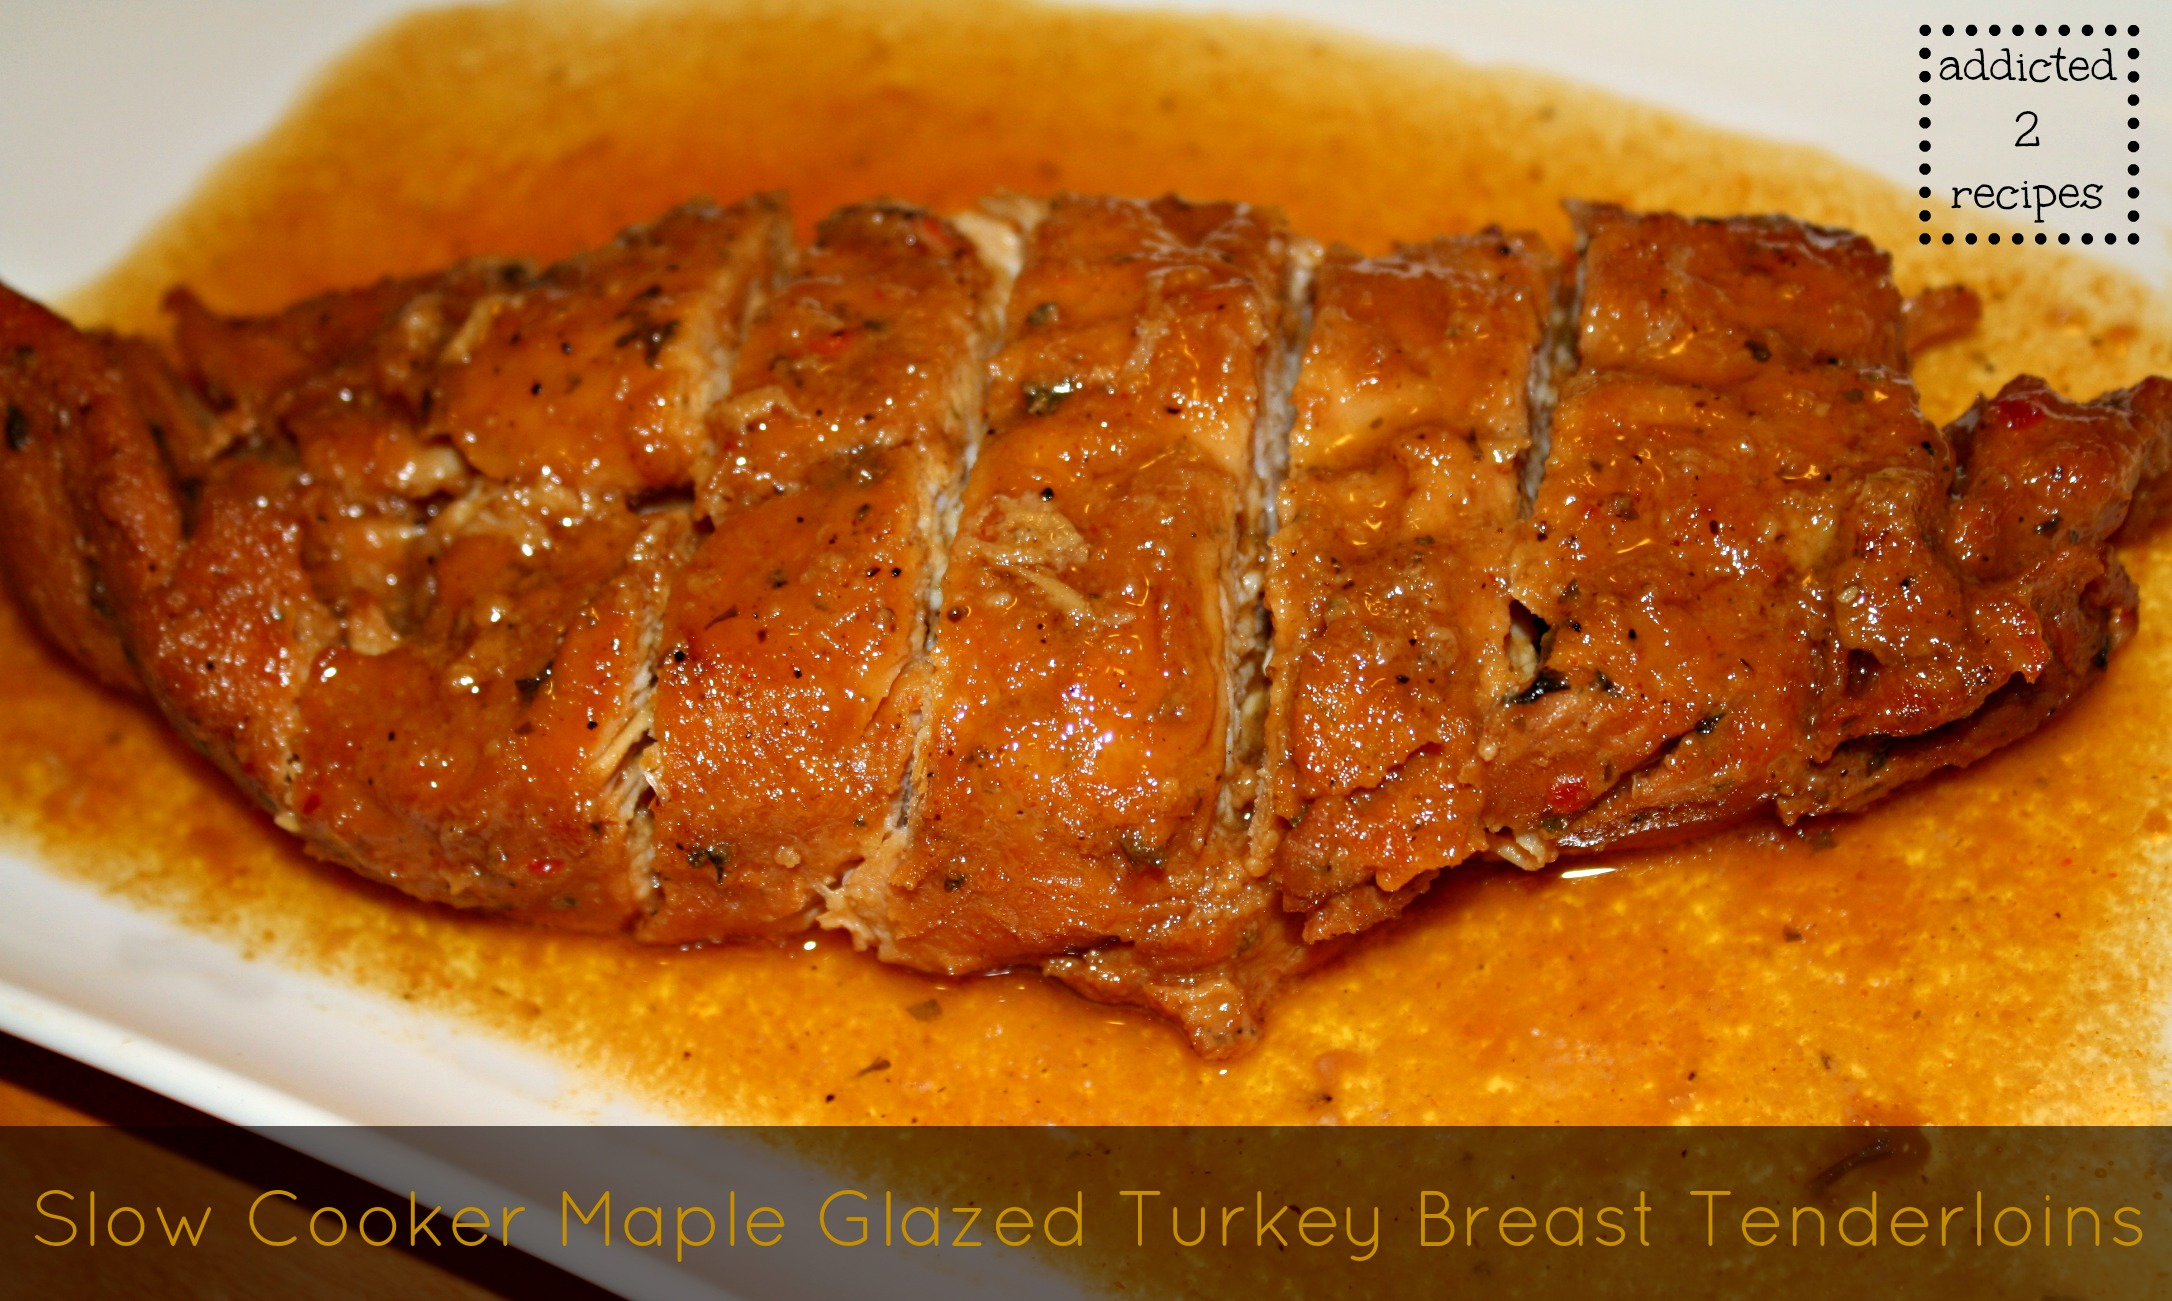 Slow Cooker Maple Glazed Turkey Breast Tenderloins